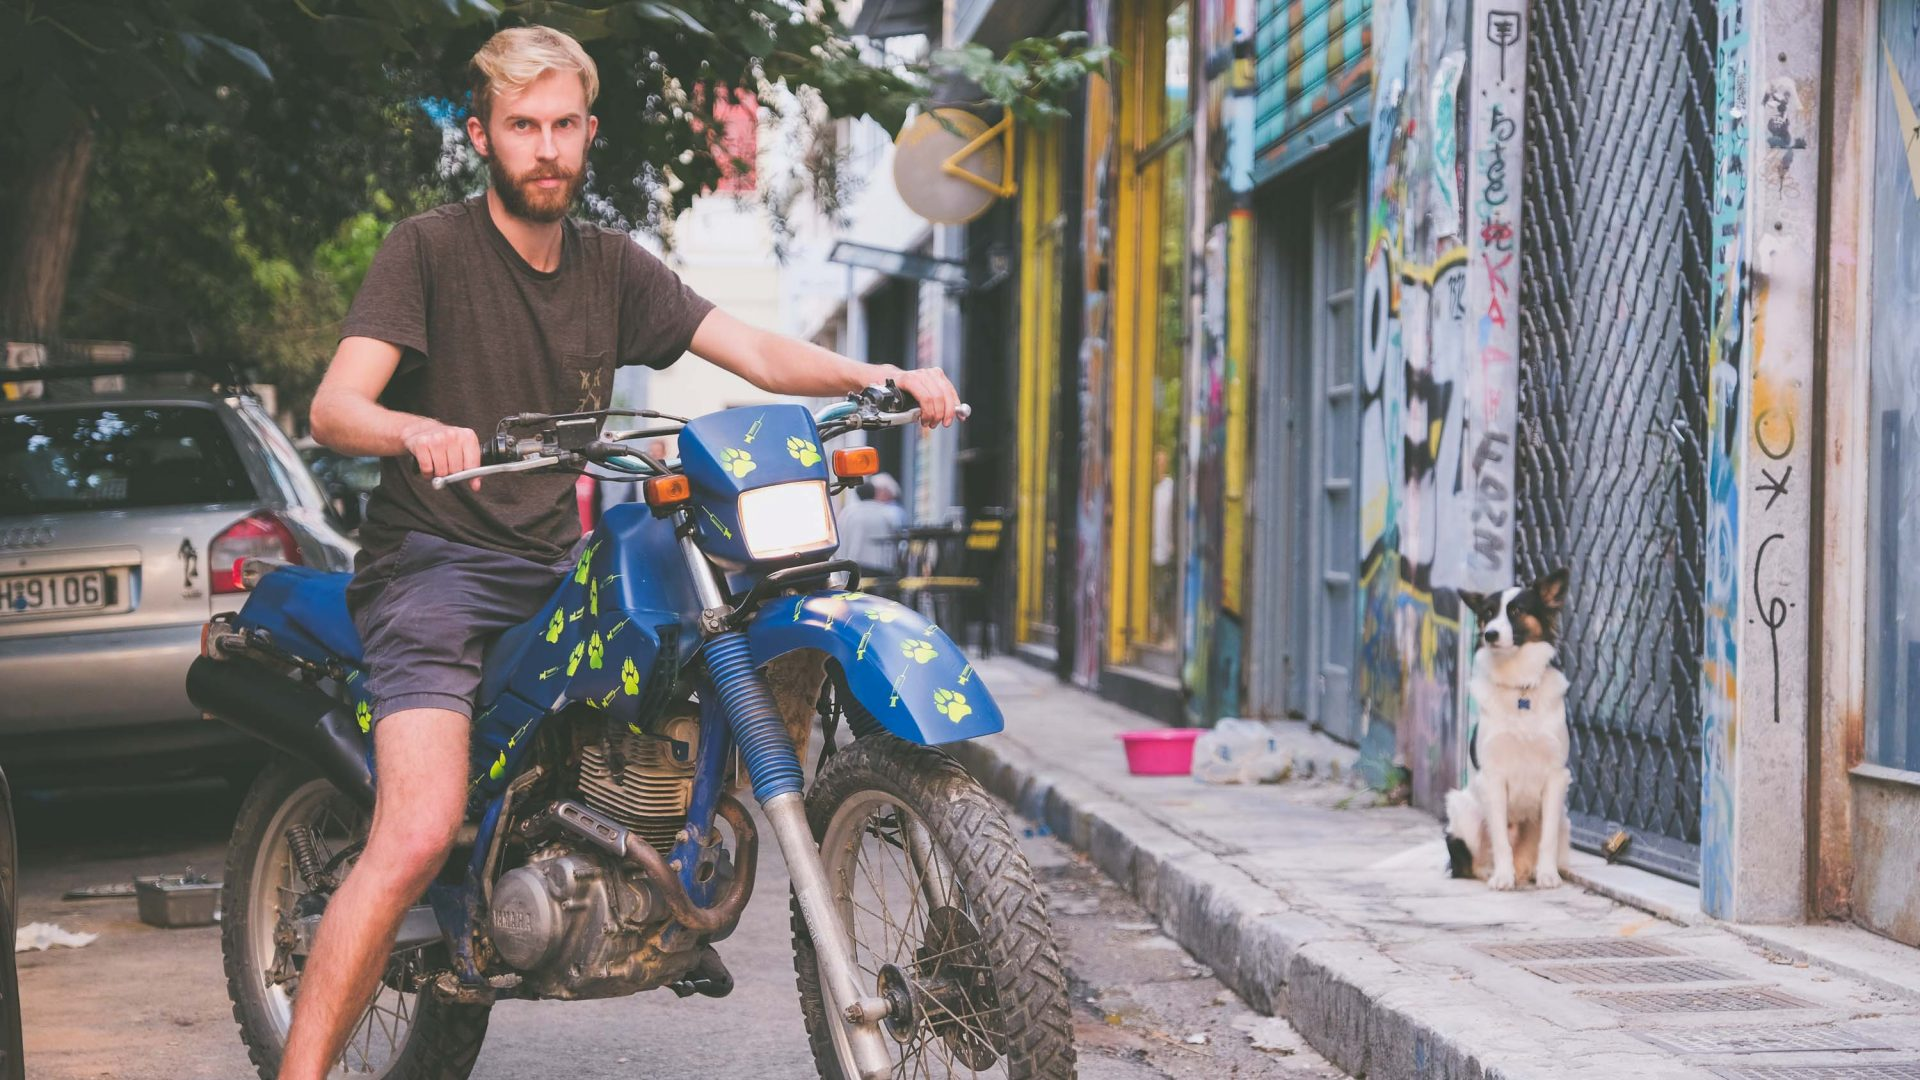 Writer Alex King on his newly purchased motorcycle.